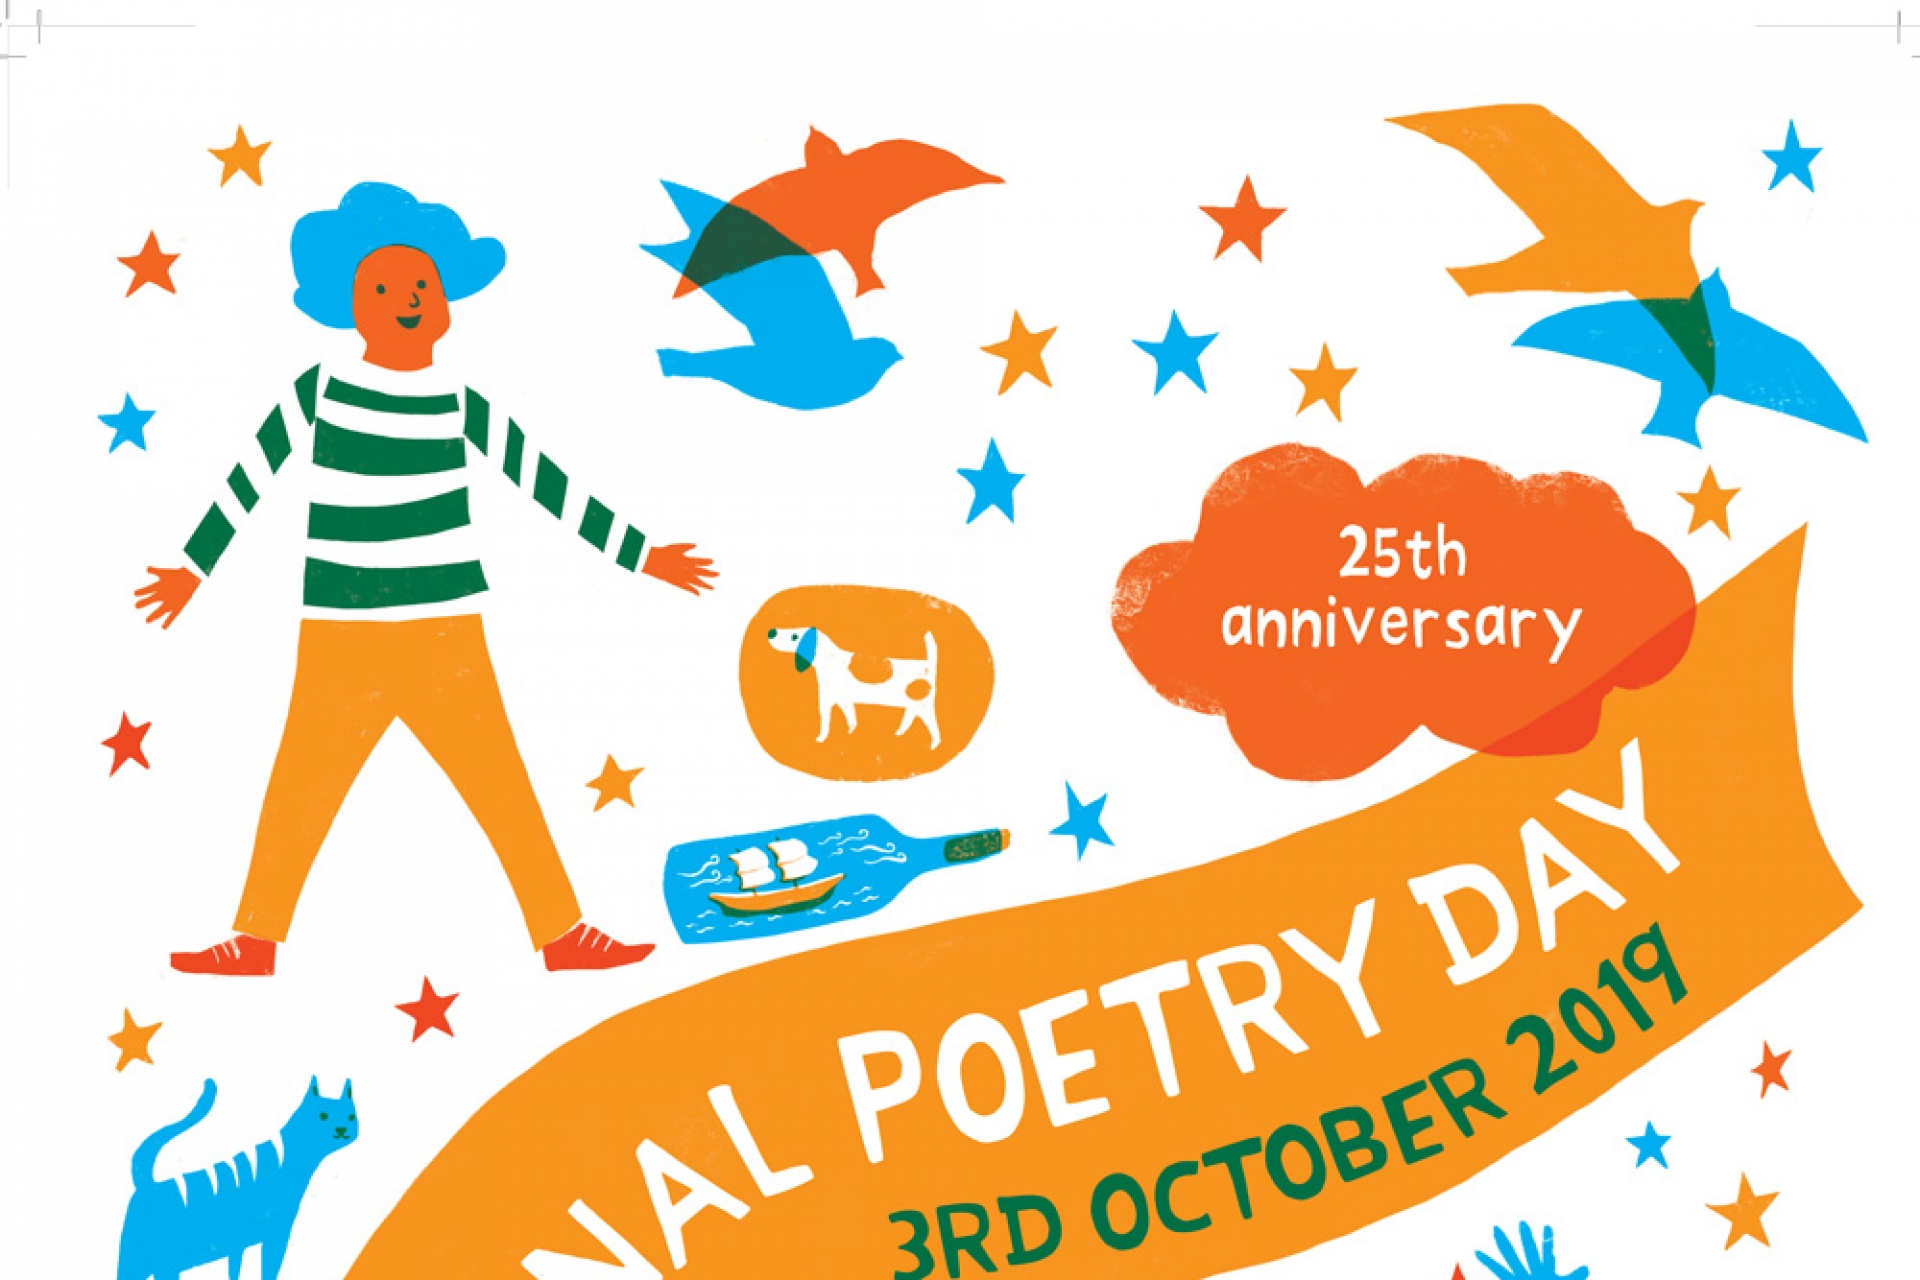 National Poetry Day - 3rd October 2019